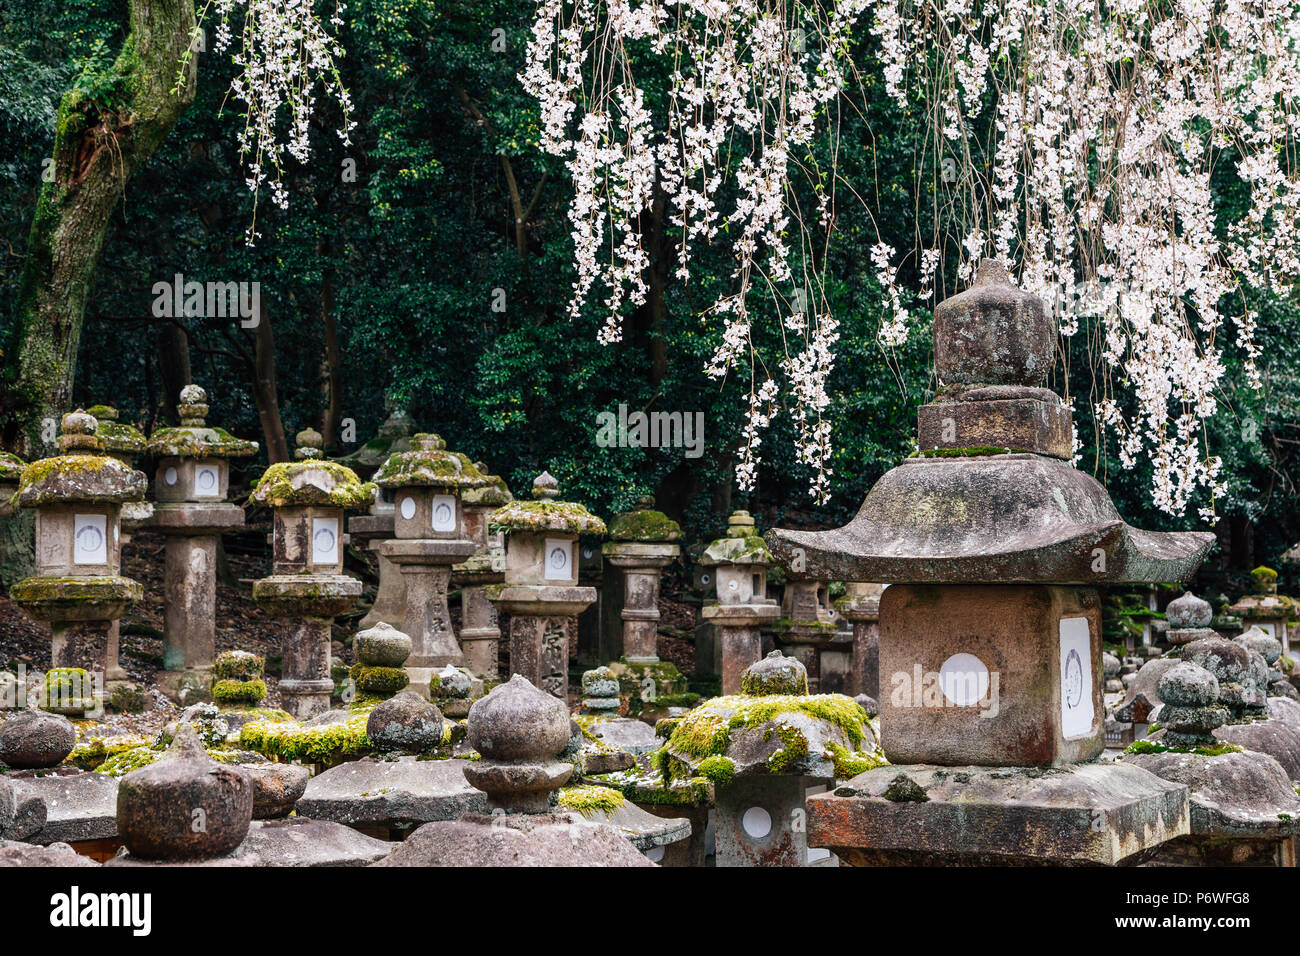 Japanese traditional stone lanterns with cherry blossoms in Nara, Japan - Stock Image